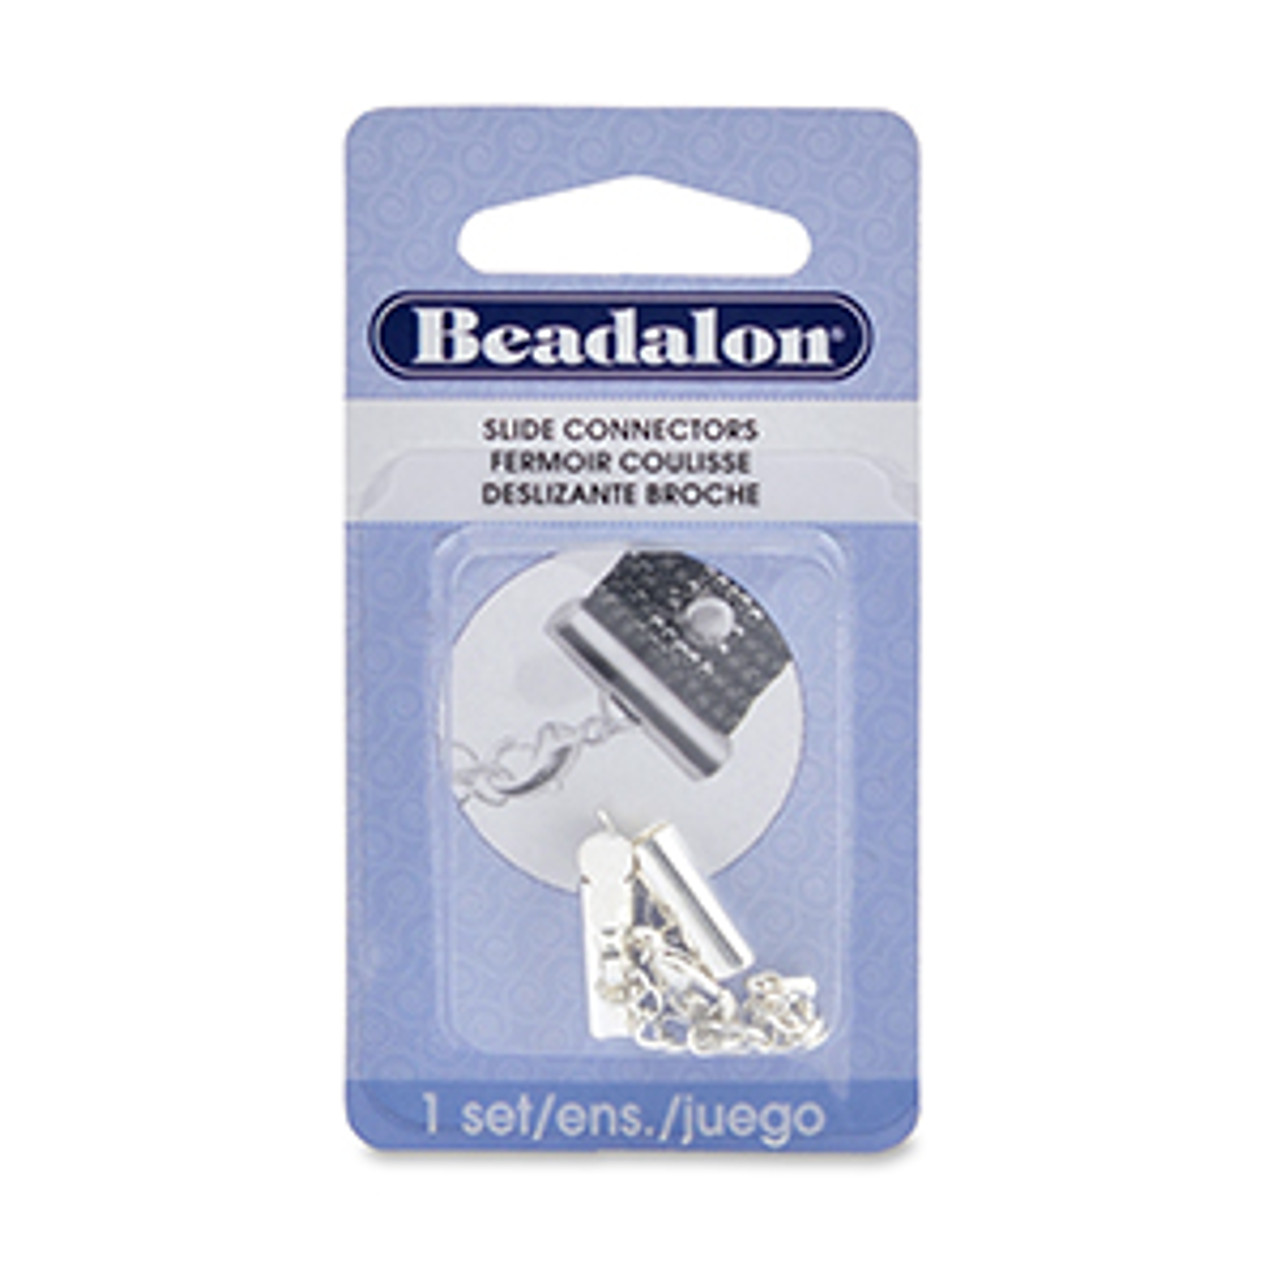 Beadalon Silver Plated 13mm Slide Connector 324B-060